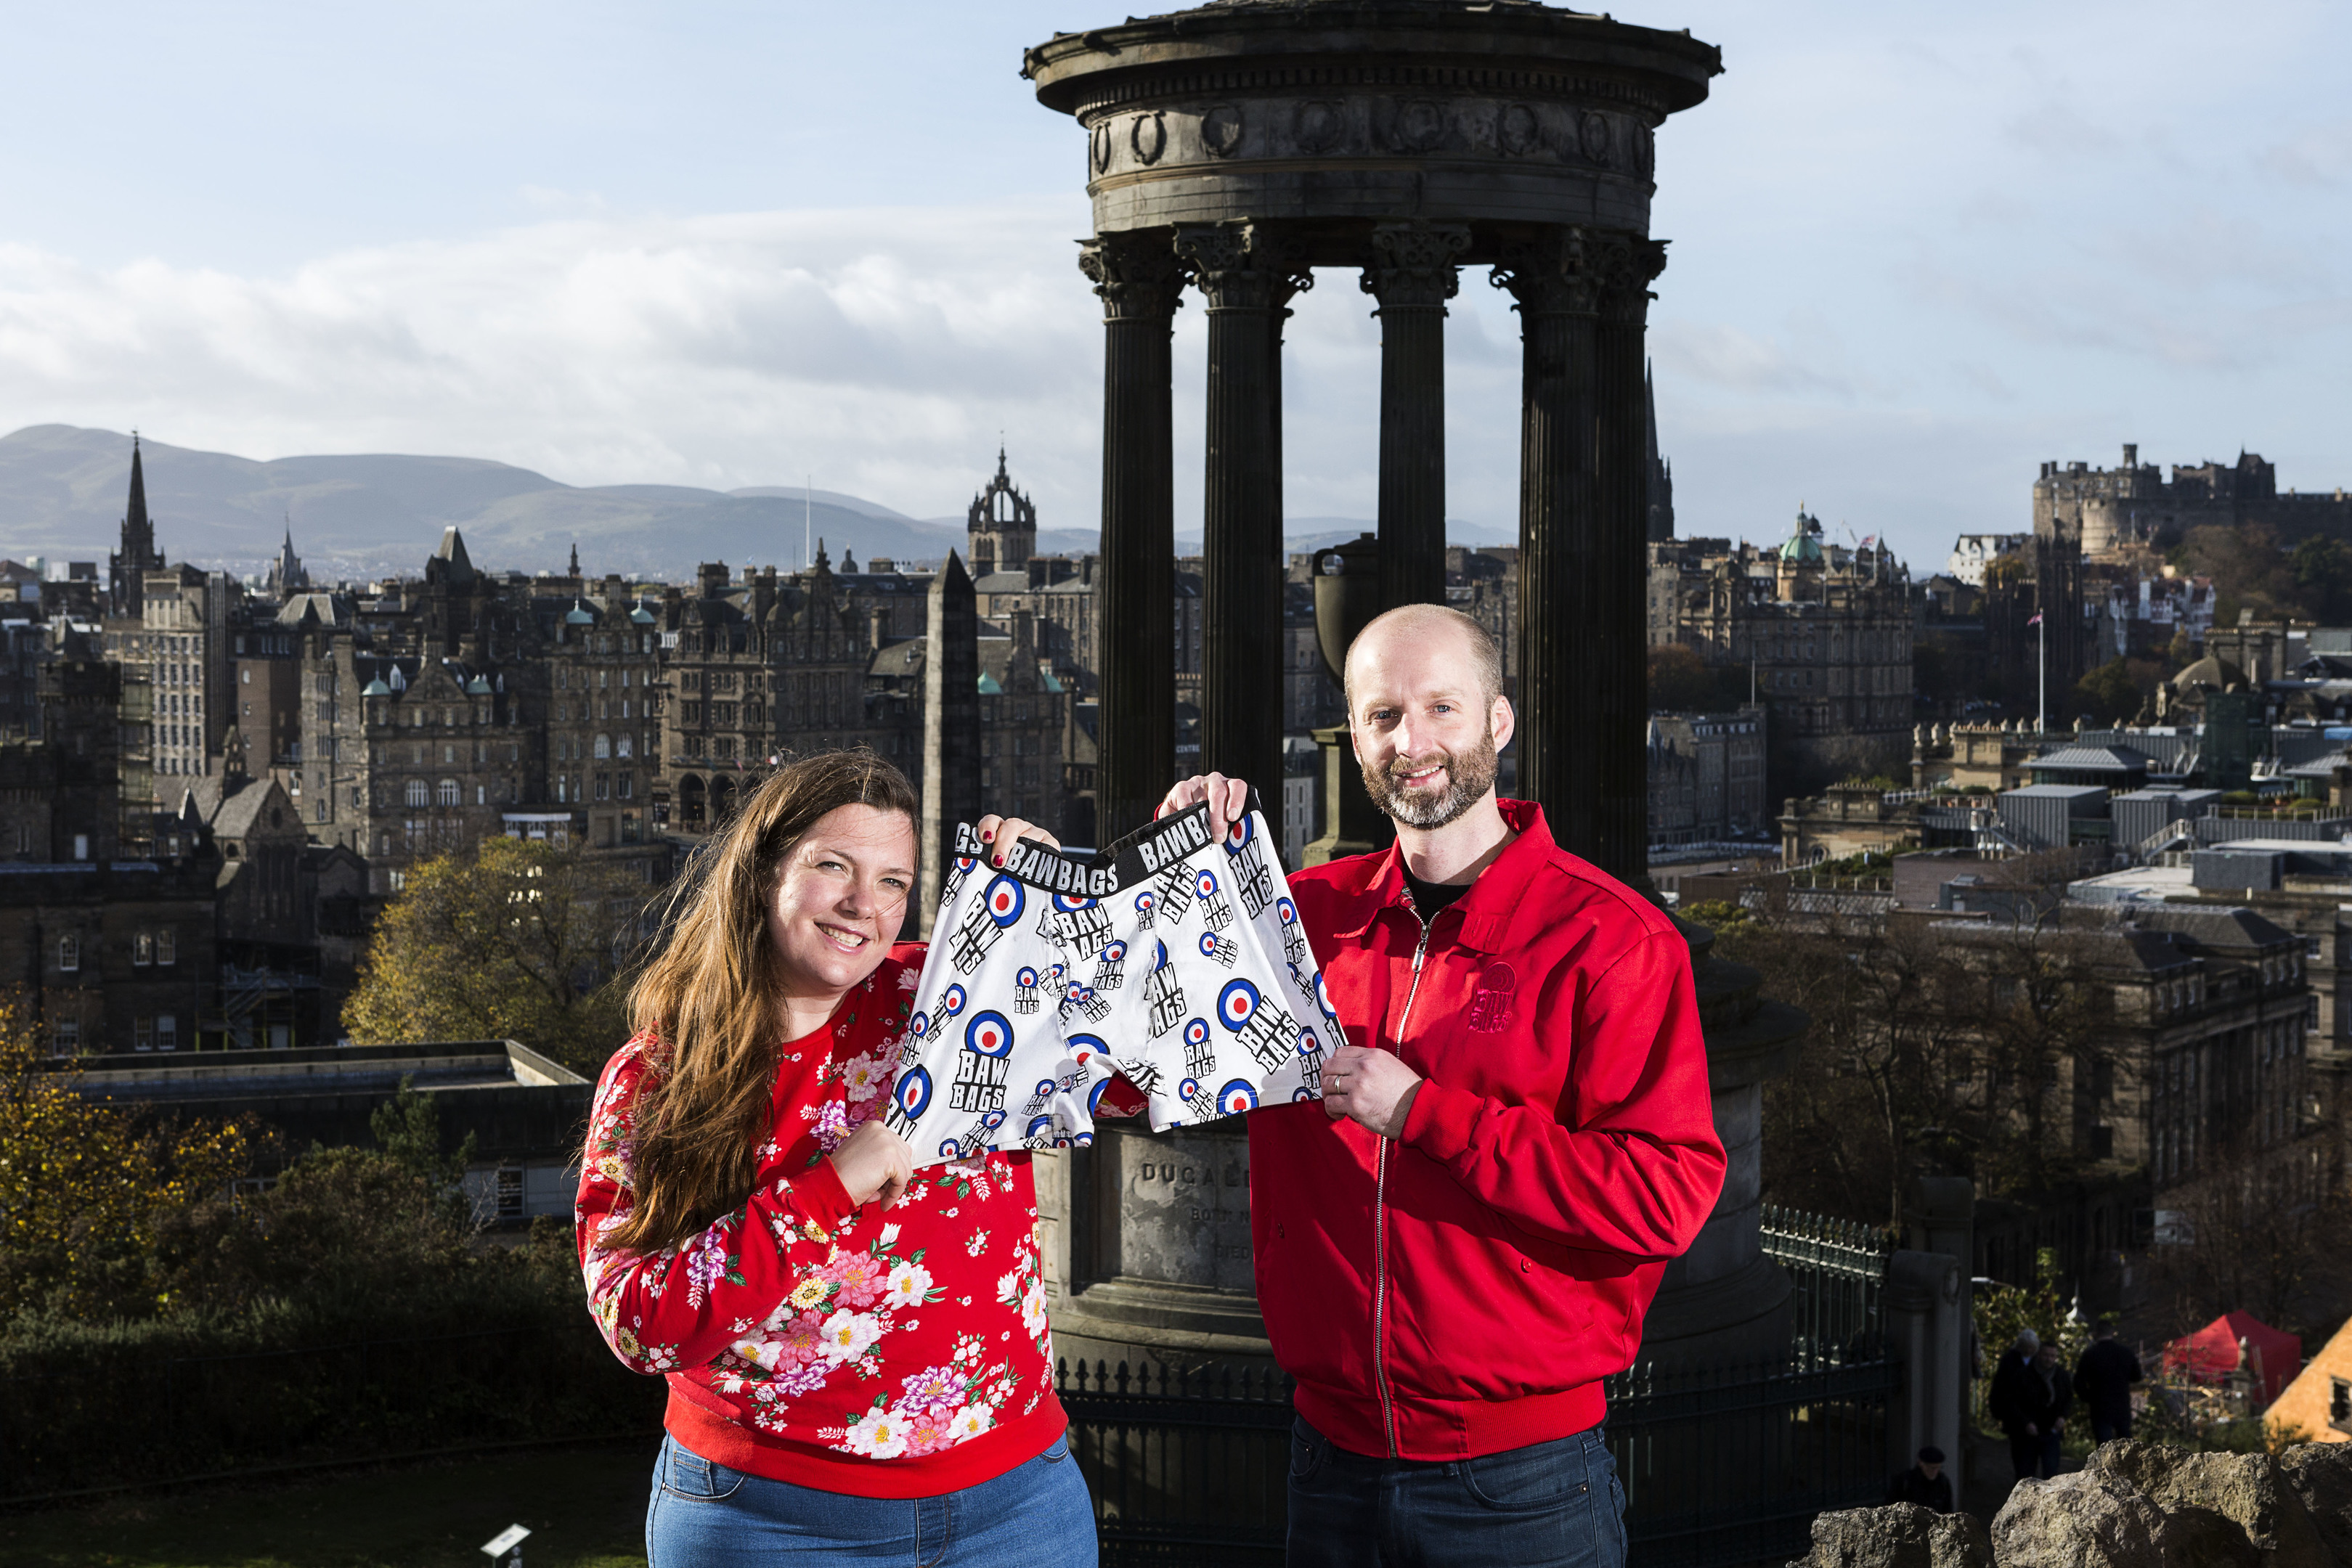 Hannah Edwards from Cyrenians and Willie MacDonald from Bawbags hope to bring an often overlooked necessity to the homeless of Scotland.